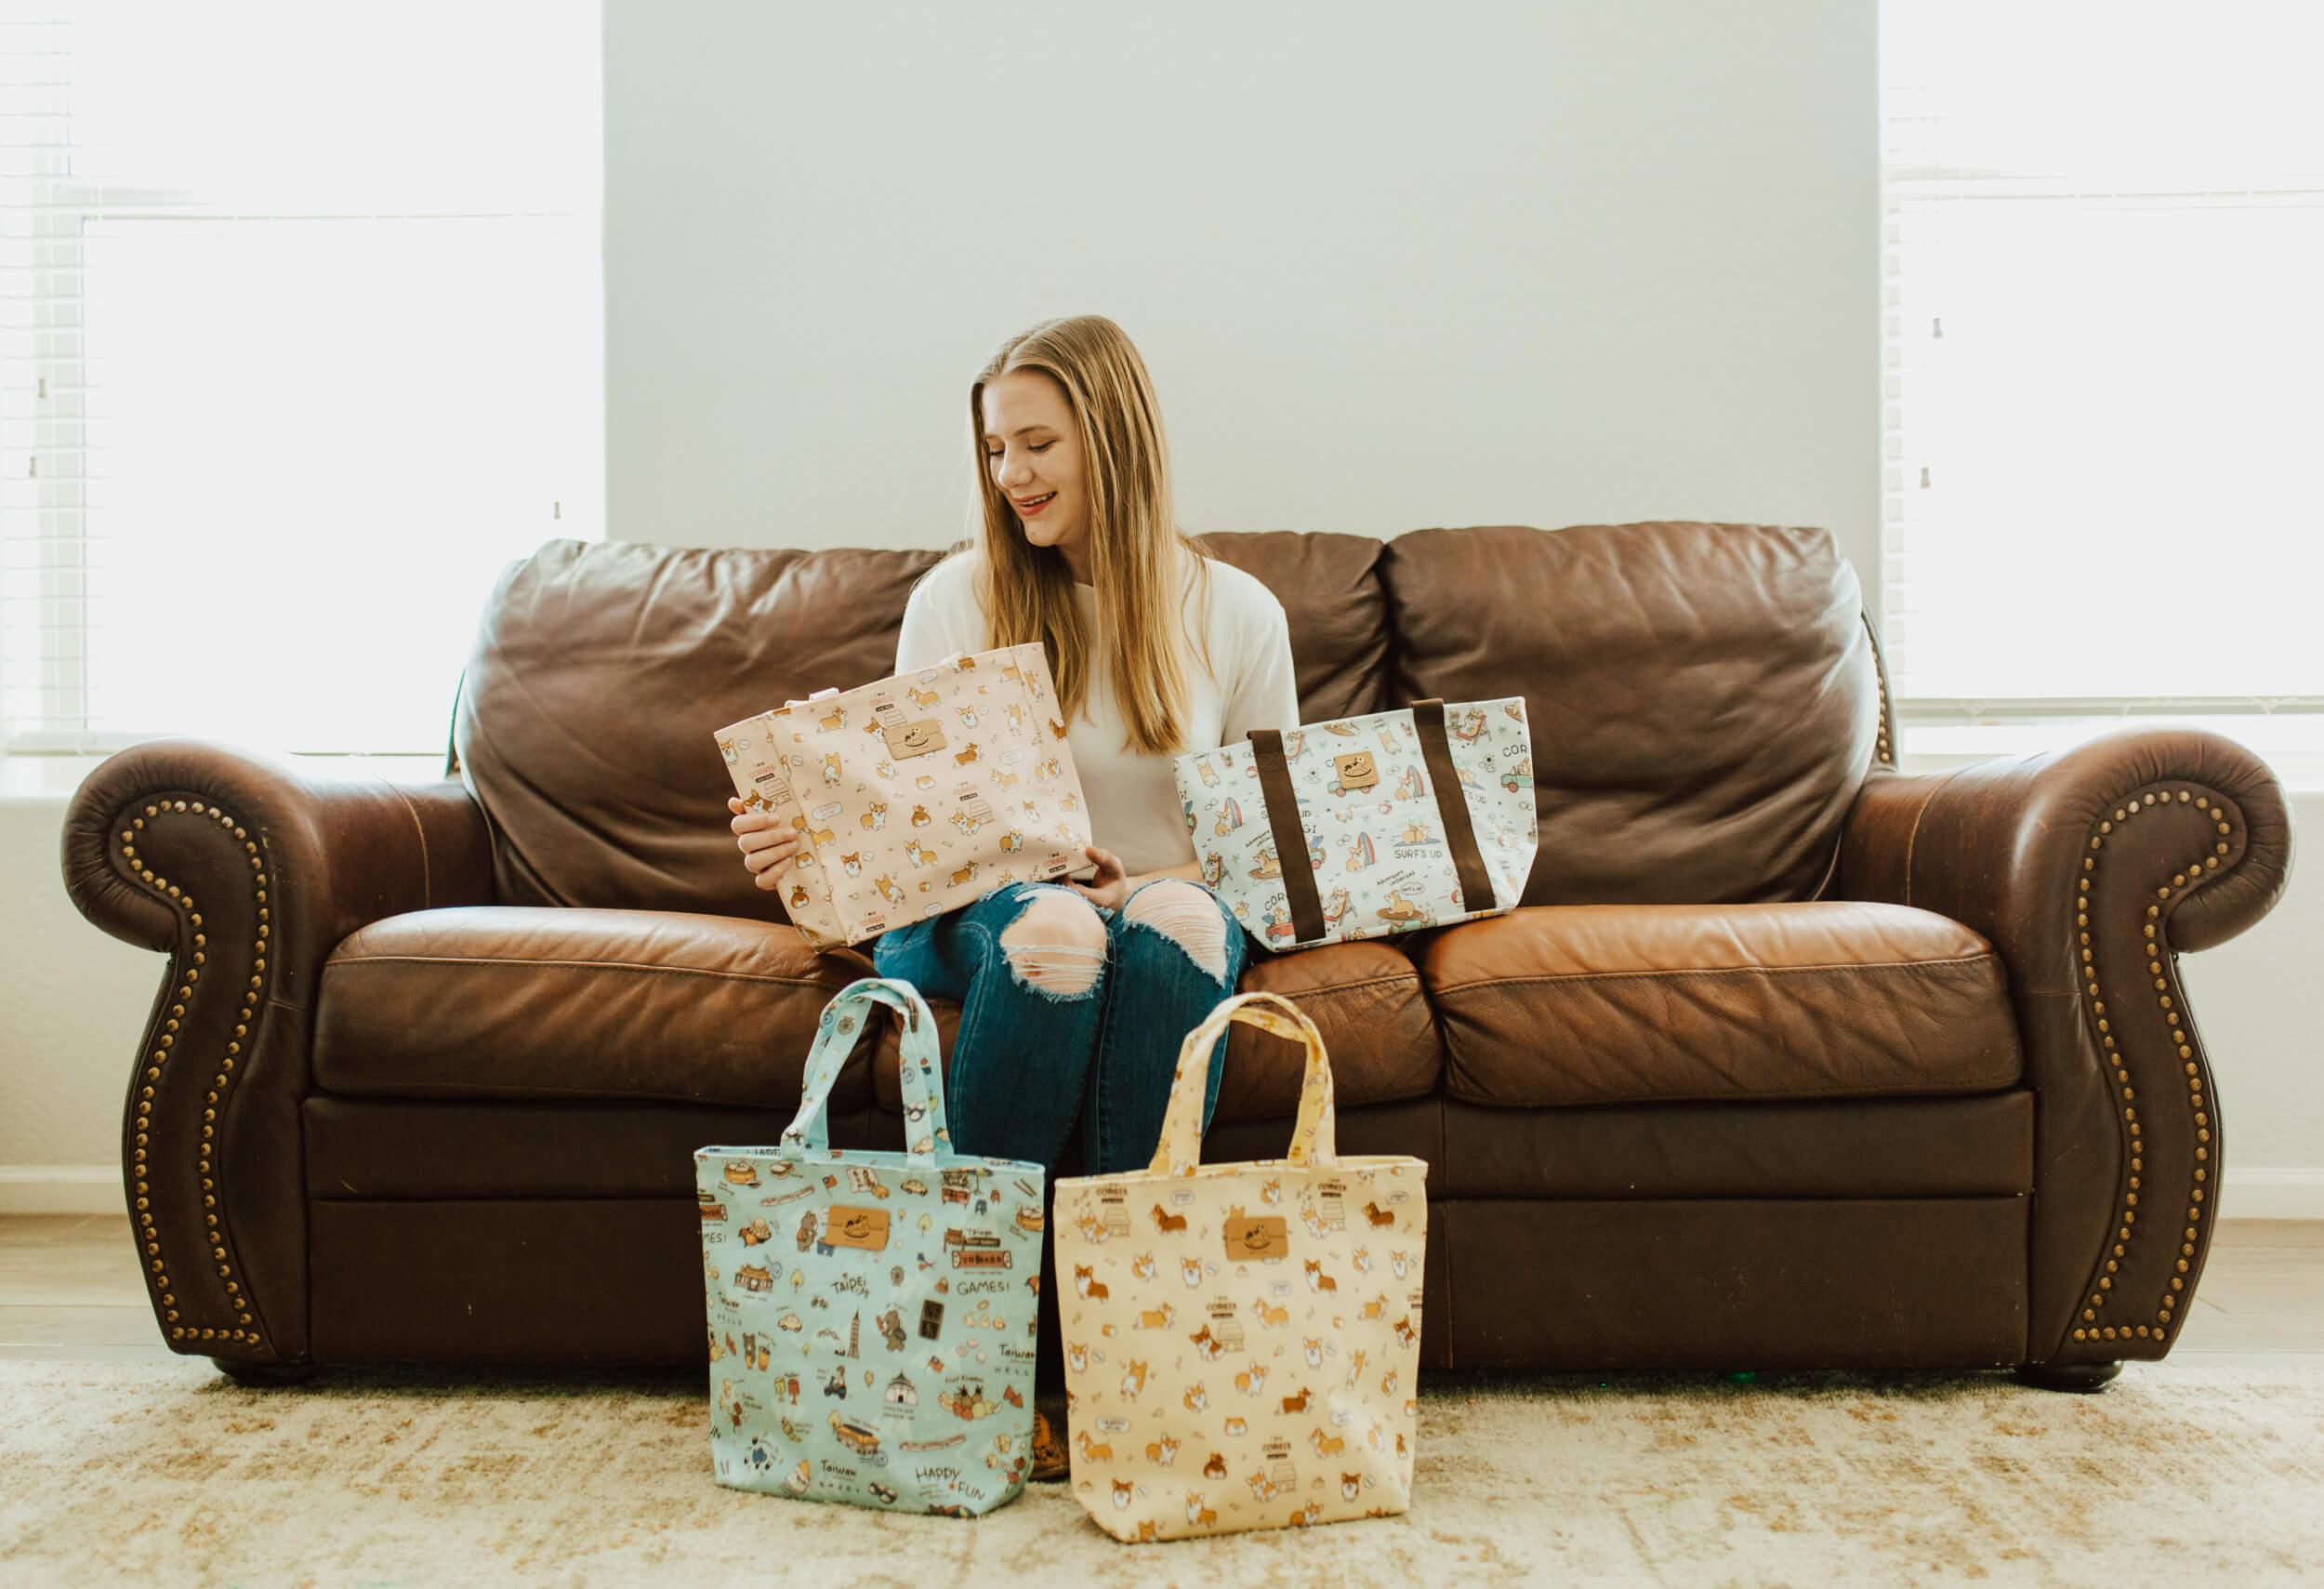 woman surrounded by Tworgis totes